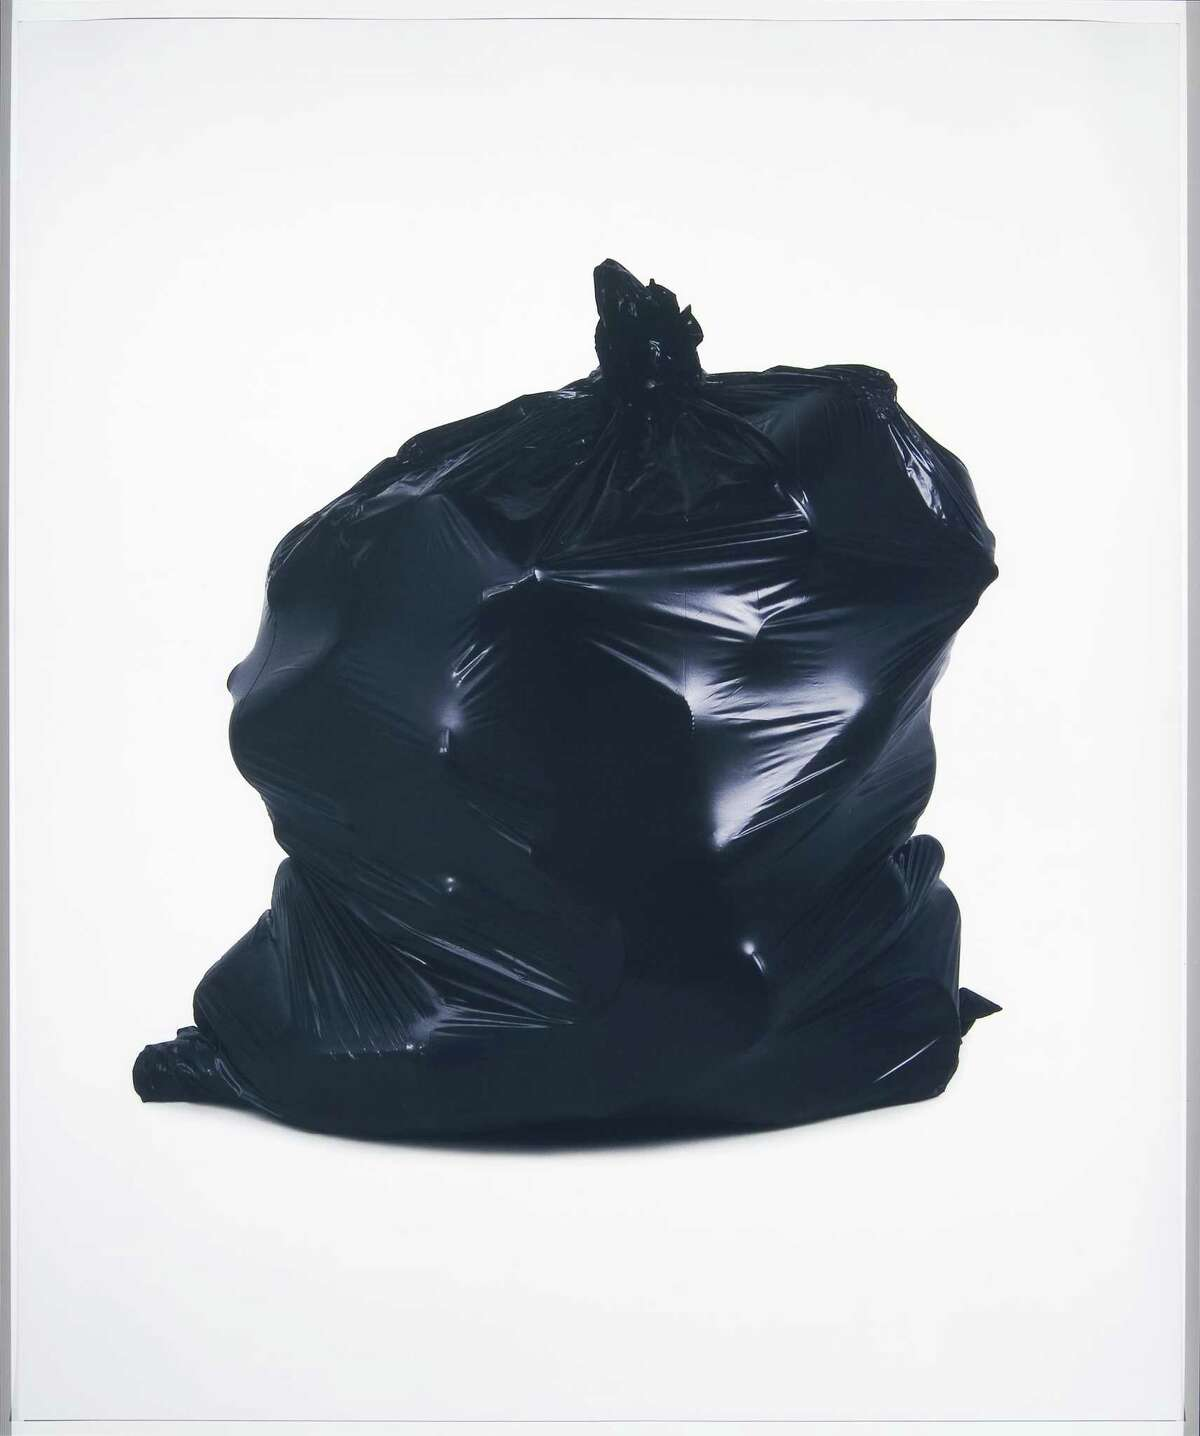 """""""Black Sack 2"""" from the series """"Trash Bags"""" by Chuck Ramirez."""